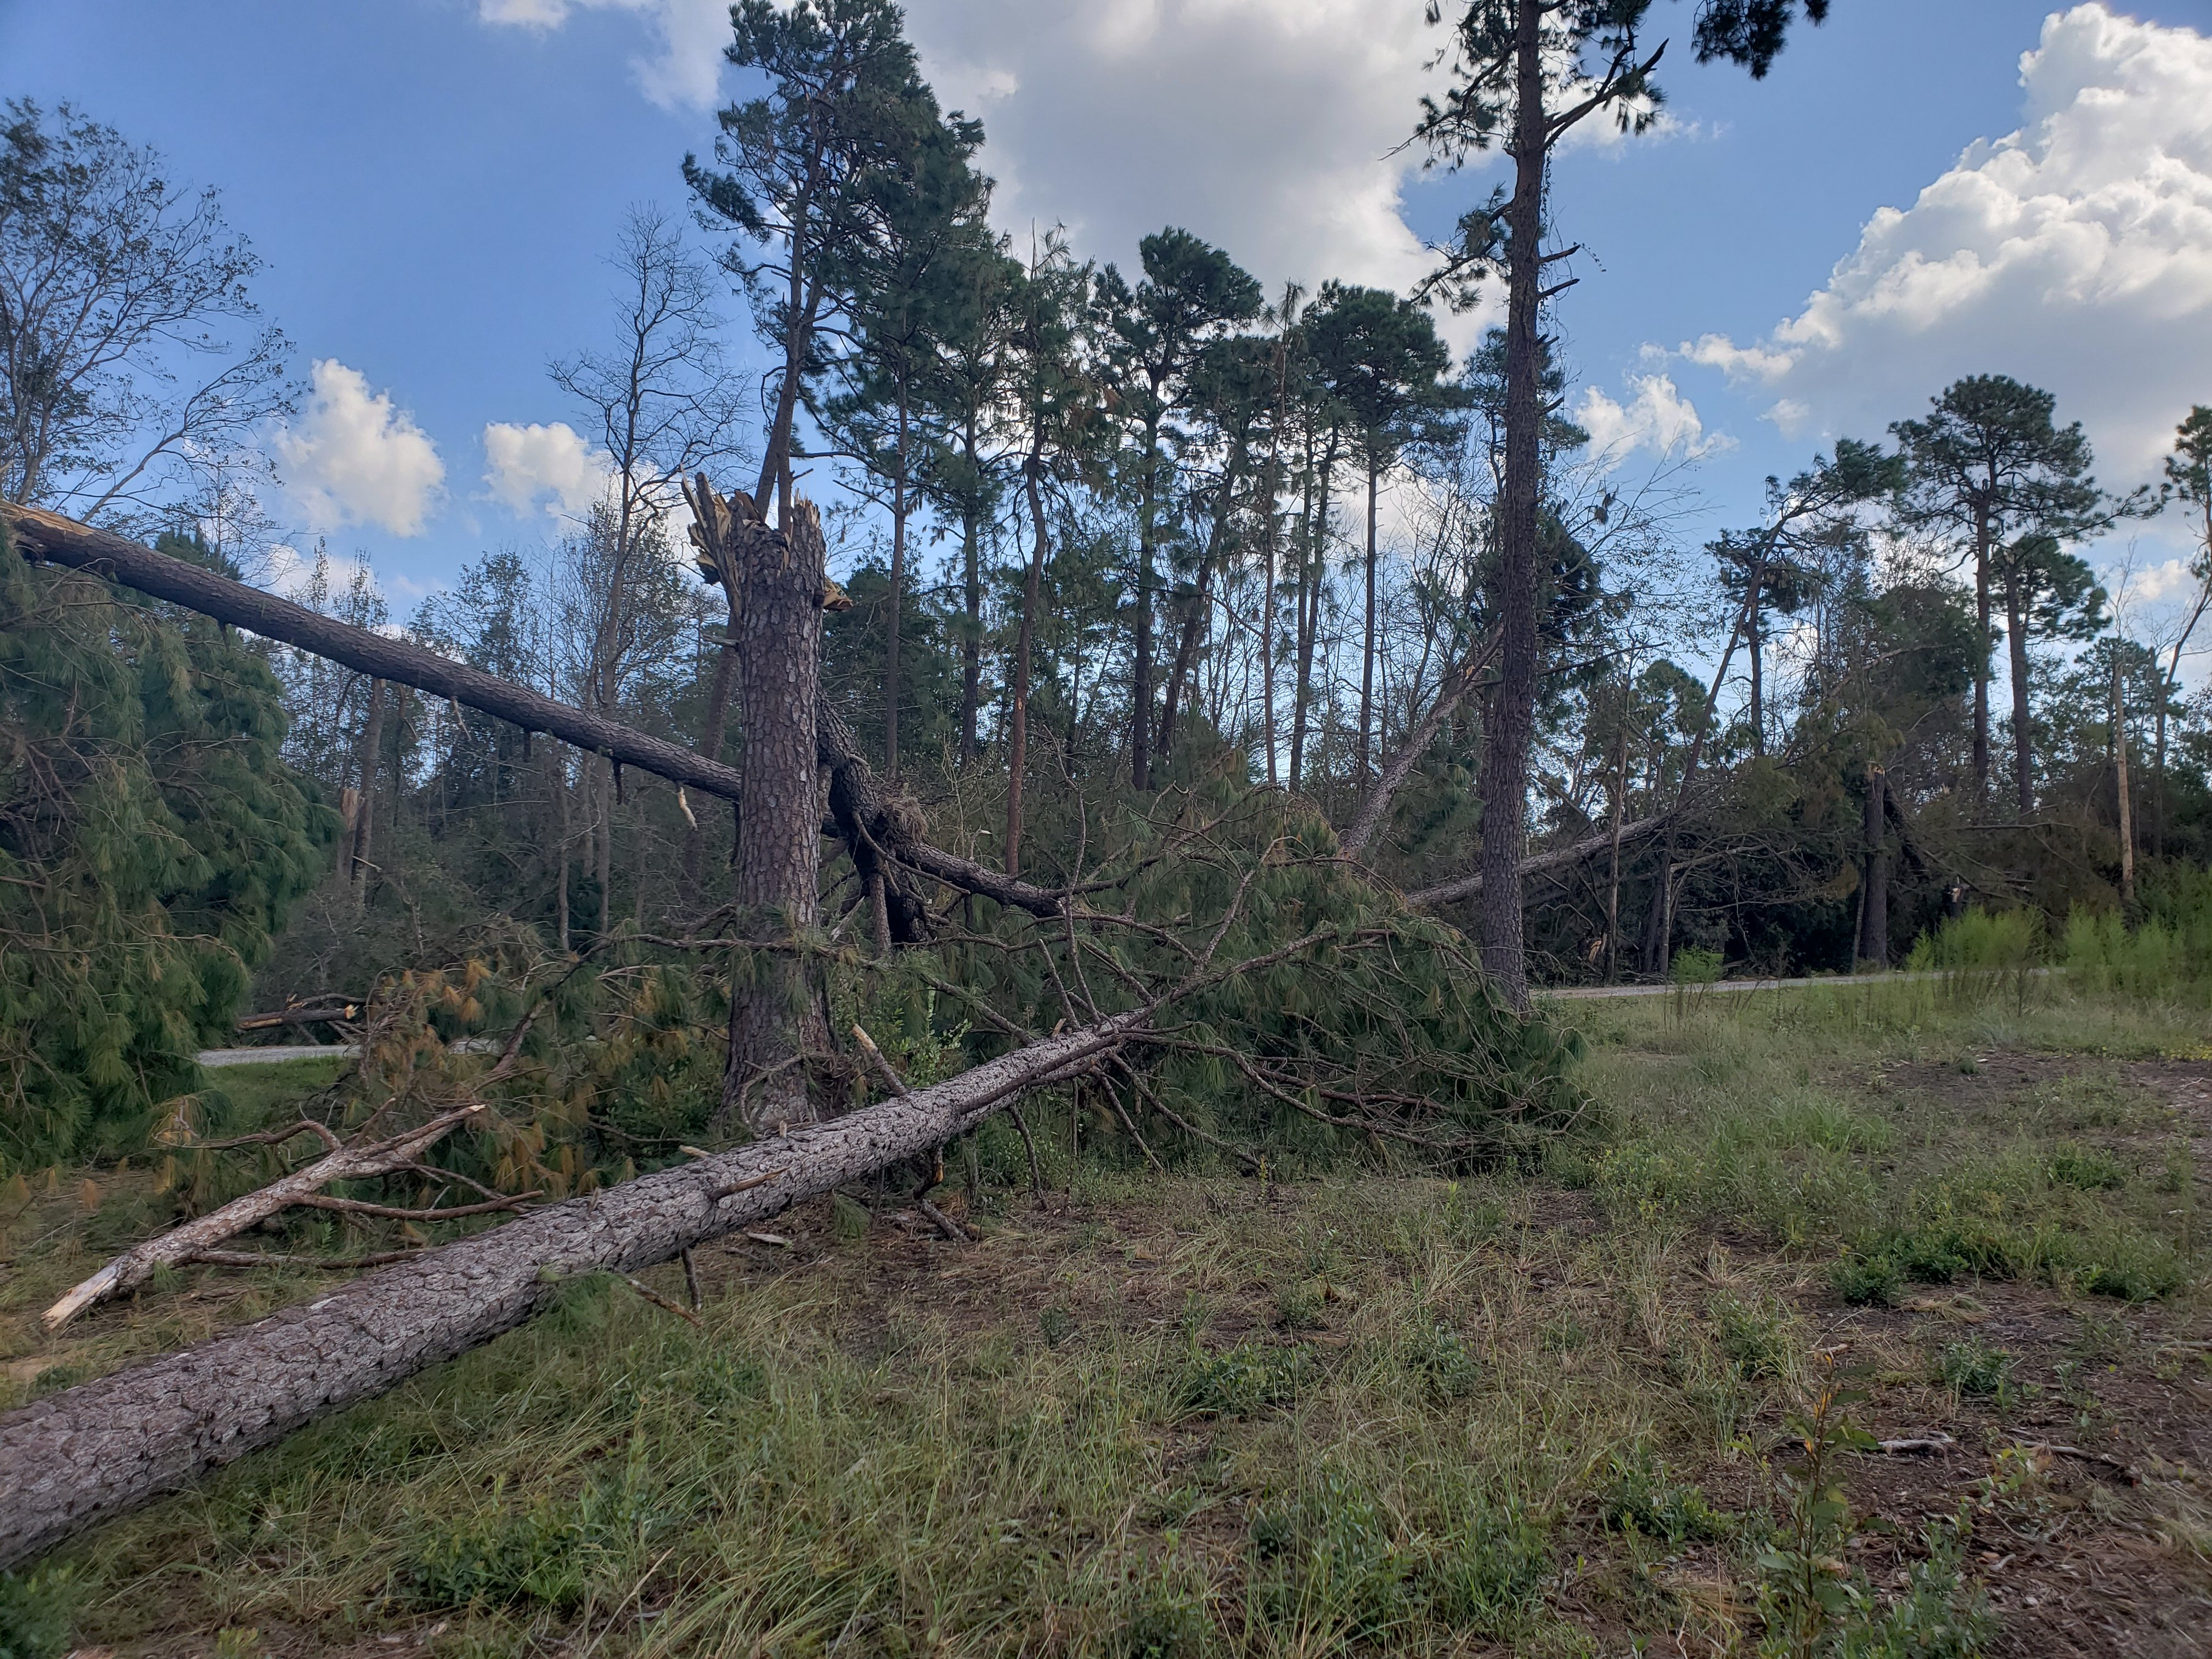 A pair of tornadoes touched down in the Bayshore community in northeastern New Hanover County during the evening hours of September 15th, producing this damage to trees.  Winds were estimated to have reached 85 mph. (Photo credit: NWS)